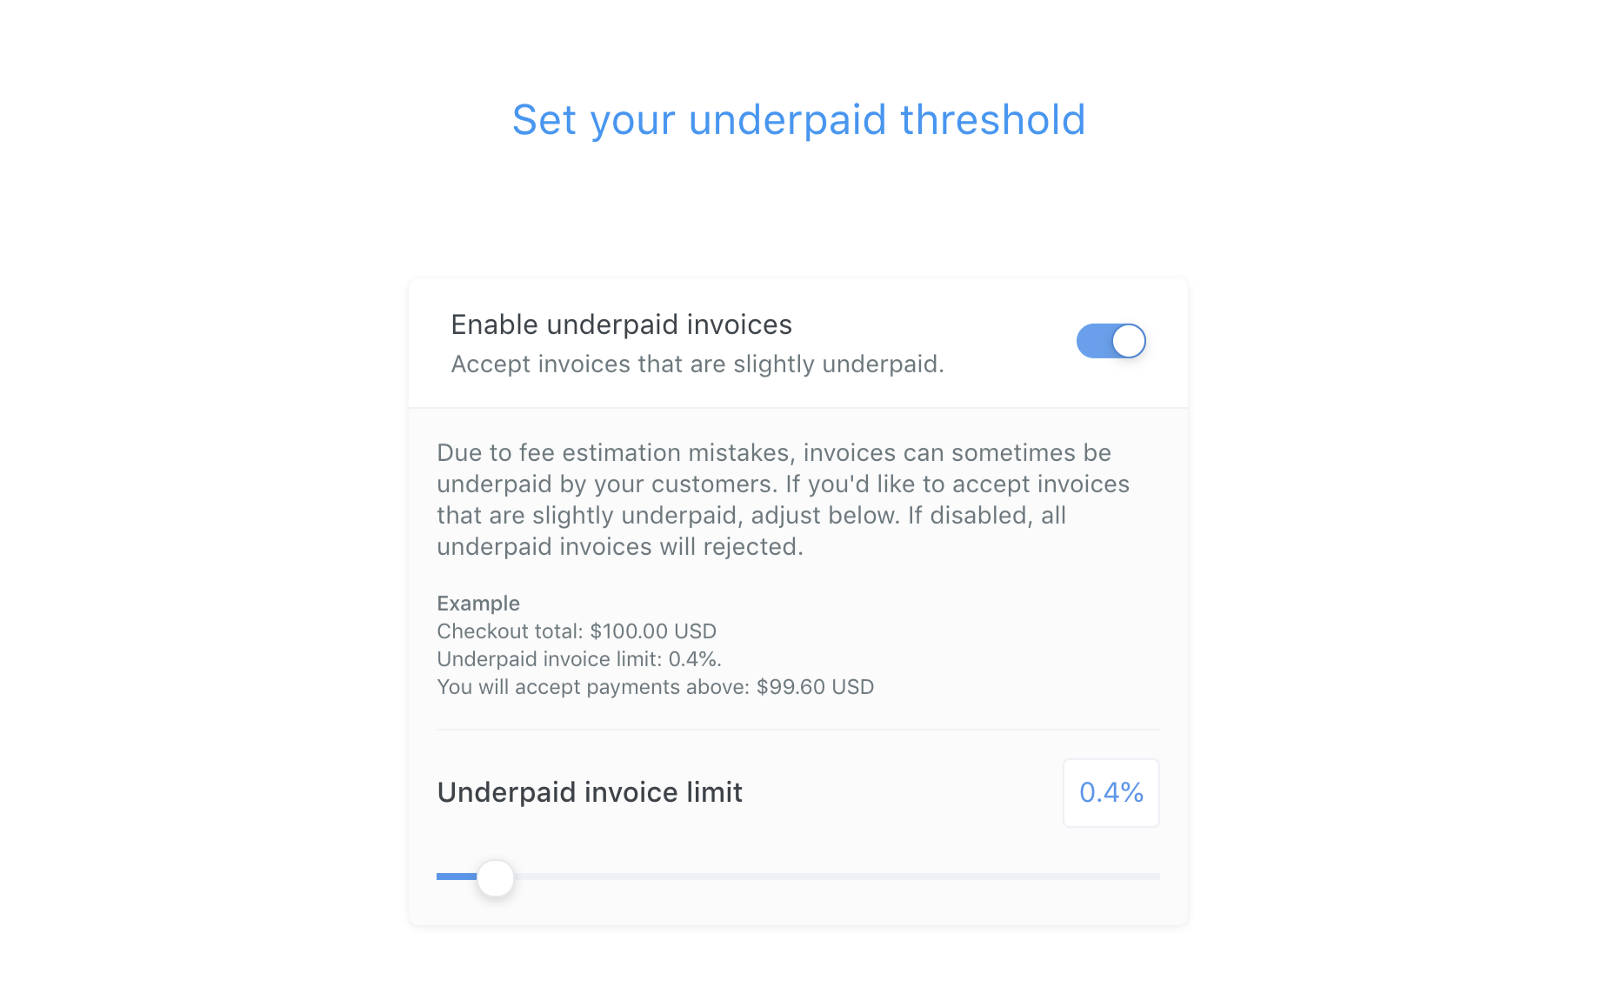 Image of setting an Underpaid threshold on the OpenNode platform